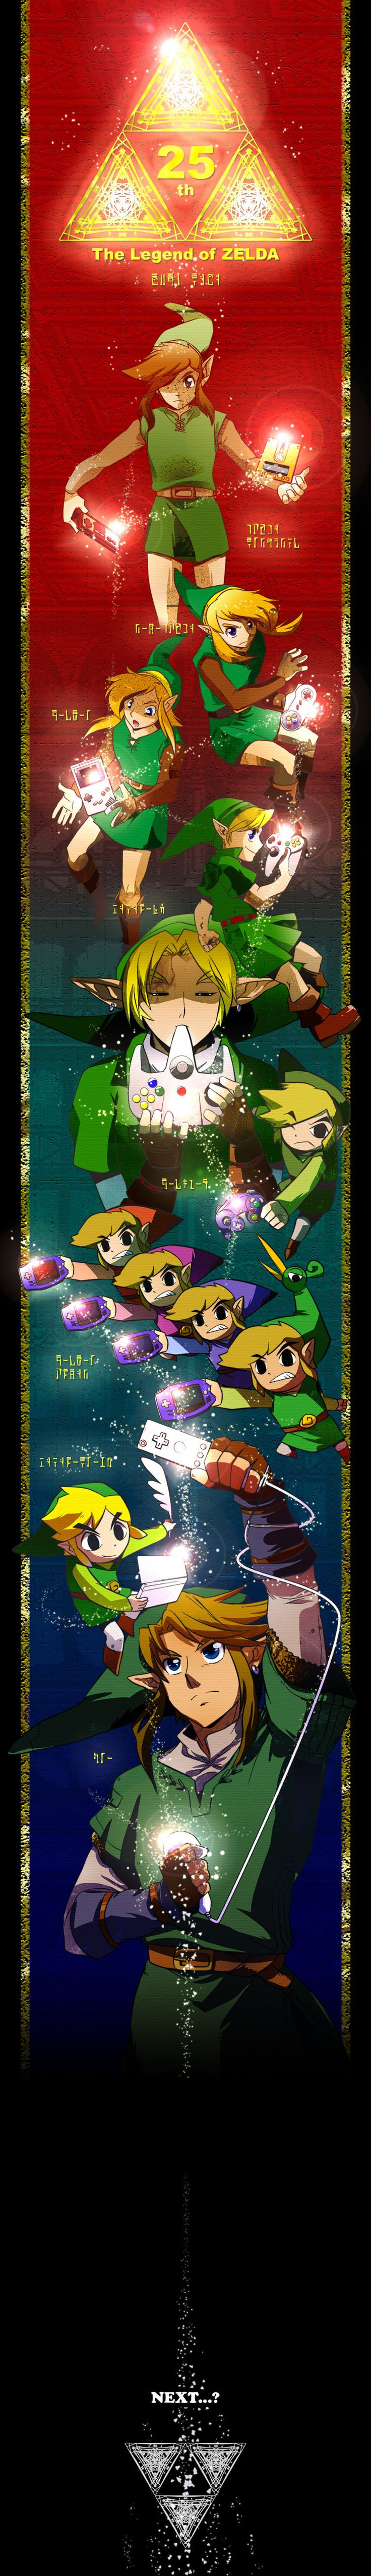 Zelda 25th Anniversary ♥ I remember watching my dad play the 1st one, waiting until I was old enough to play. I never looked back!!